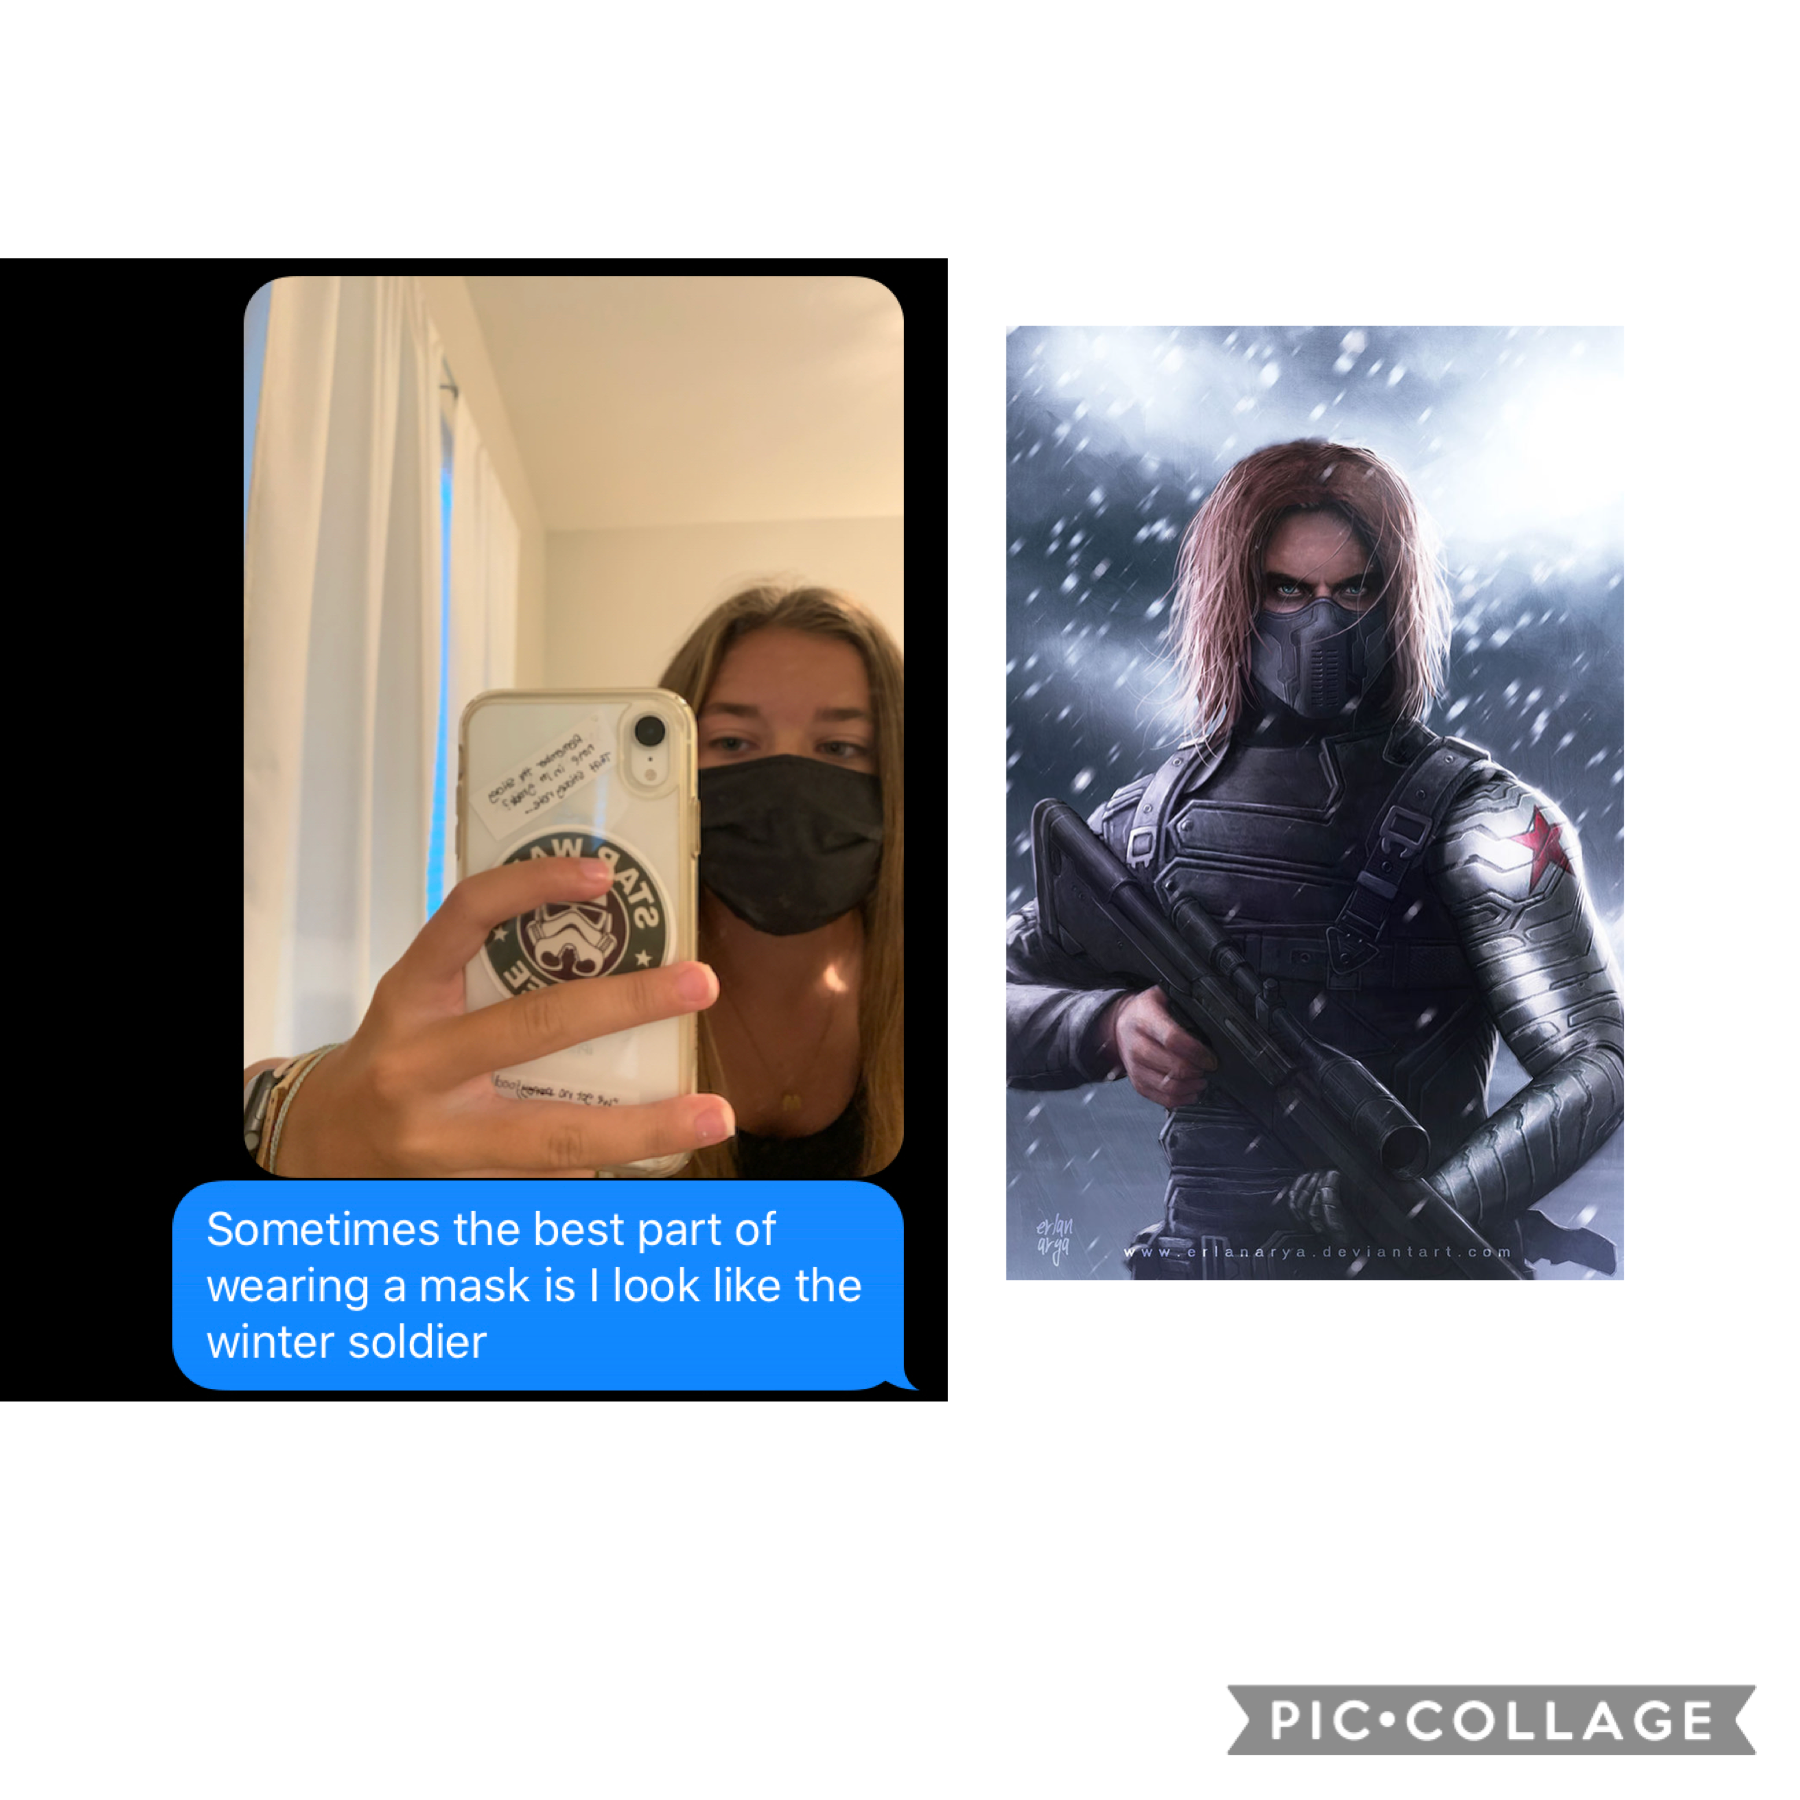 Sent this to my friend friend today